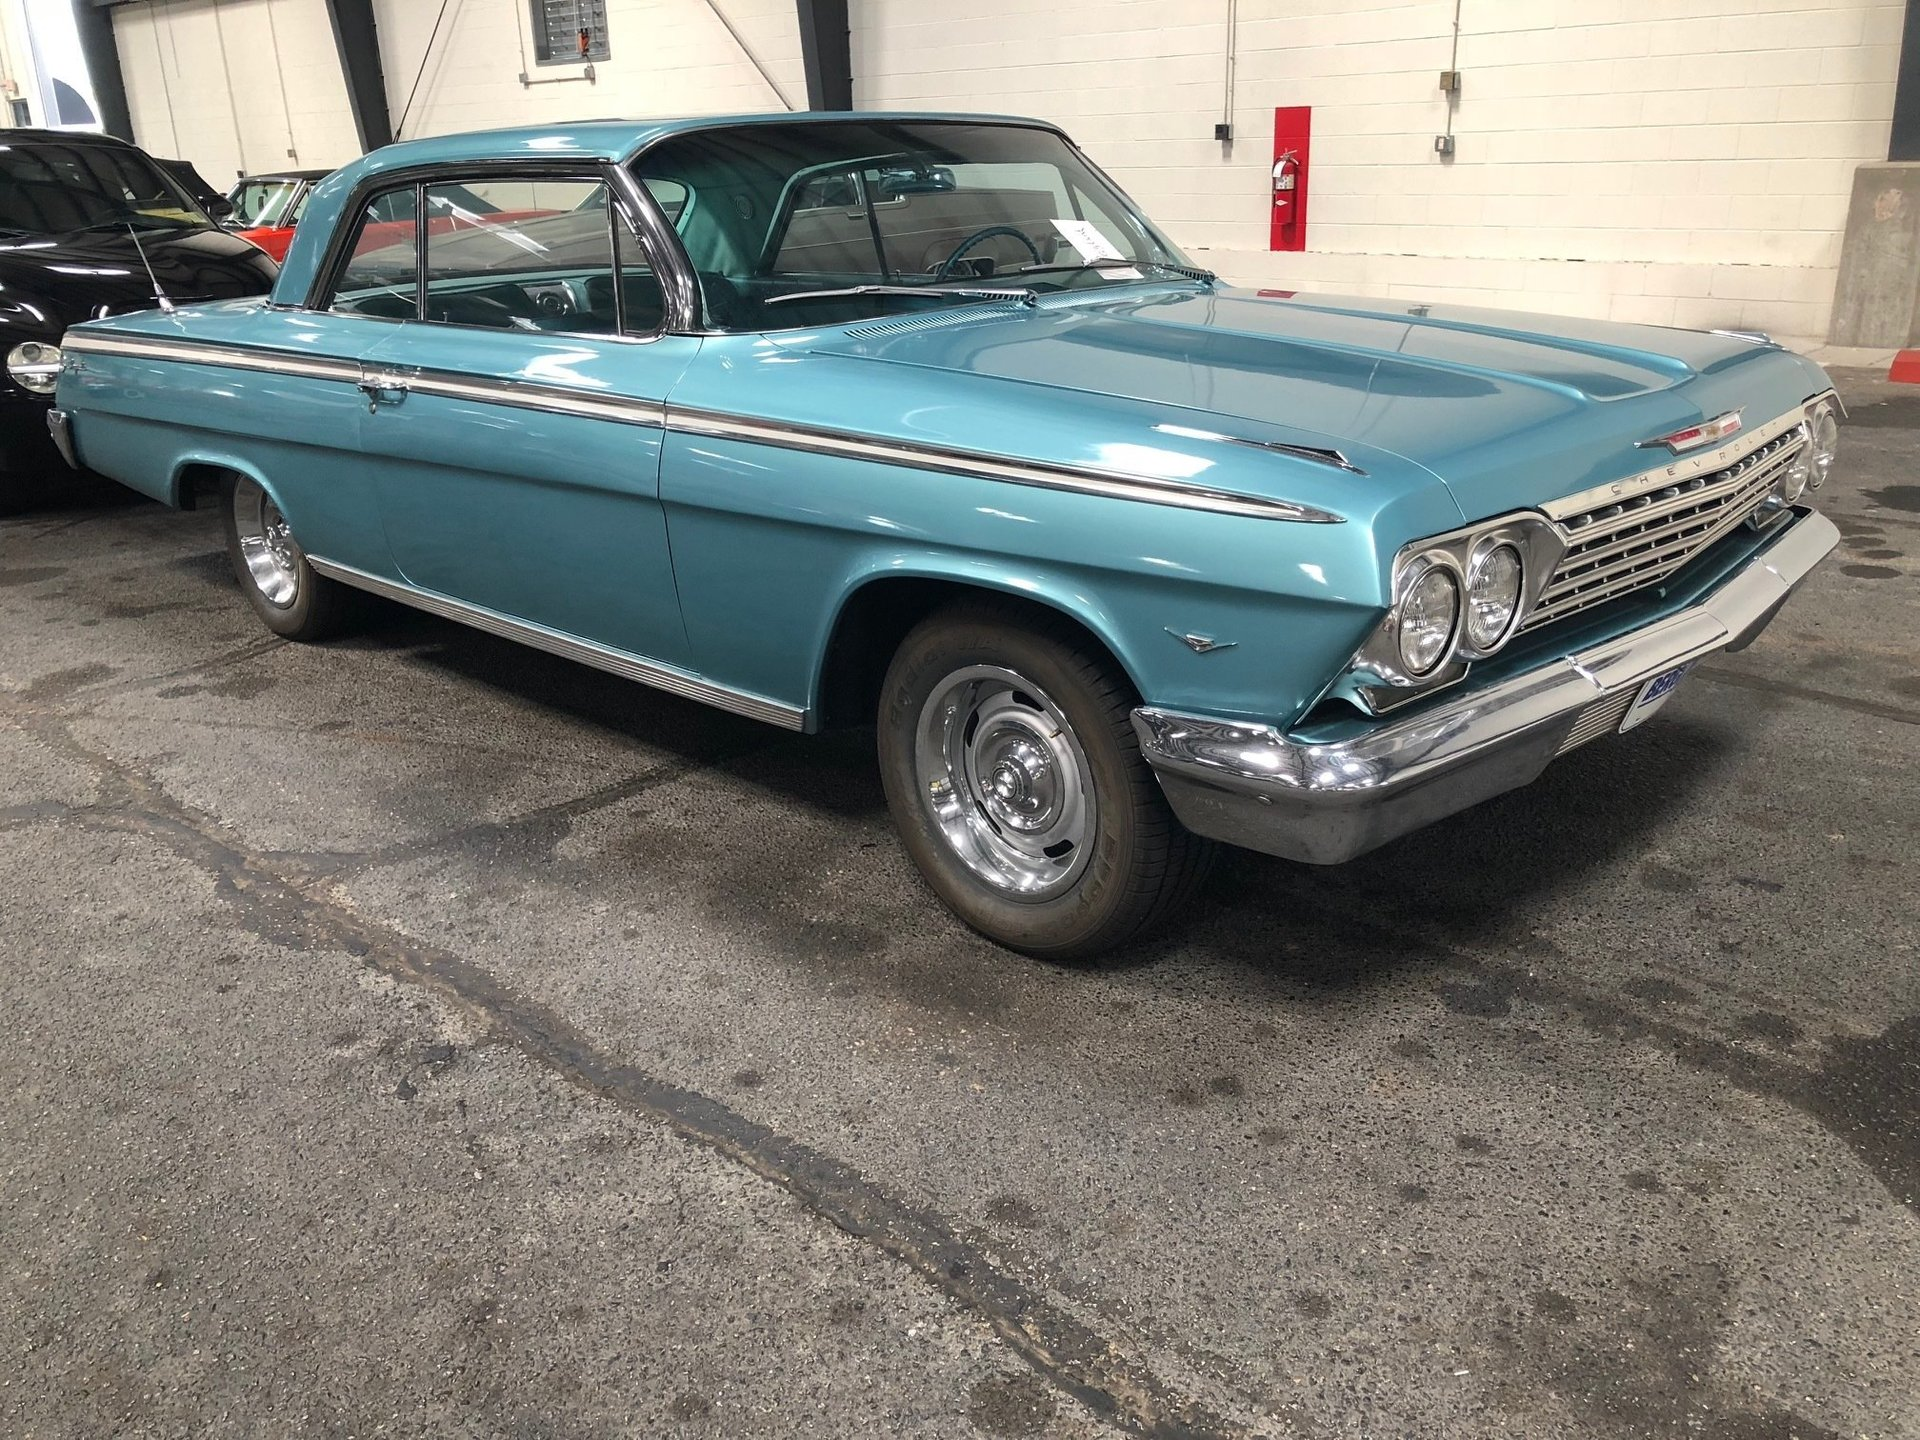 Norwalk Auto Auction >> 1962 Chevrolet Impala | GAA Classic Cars